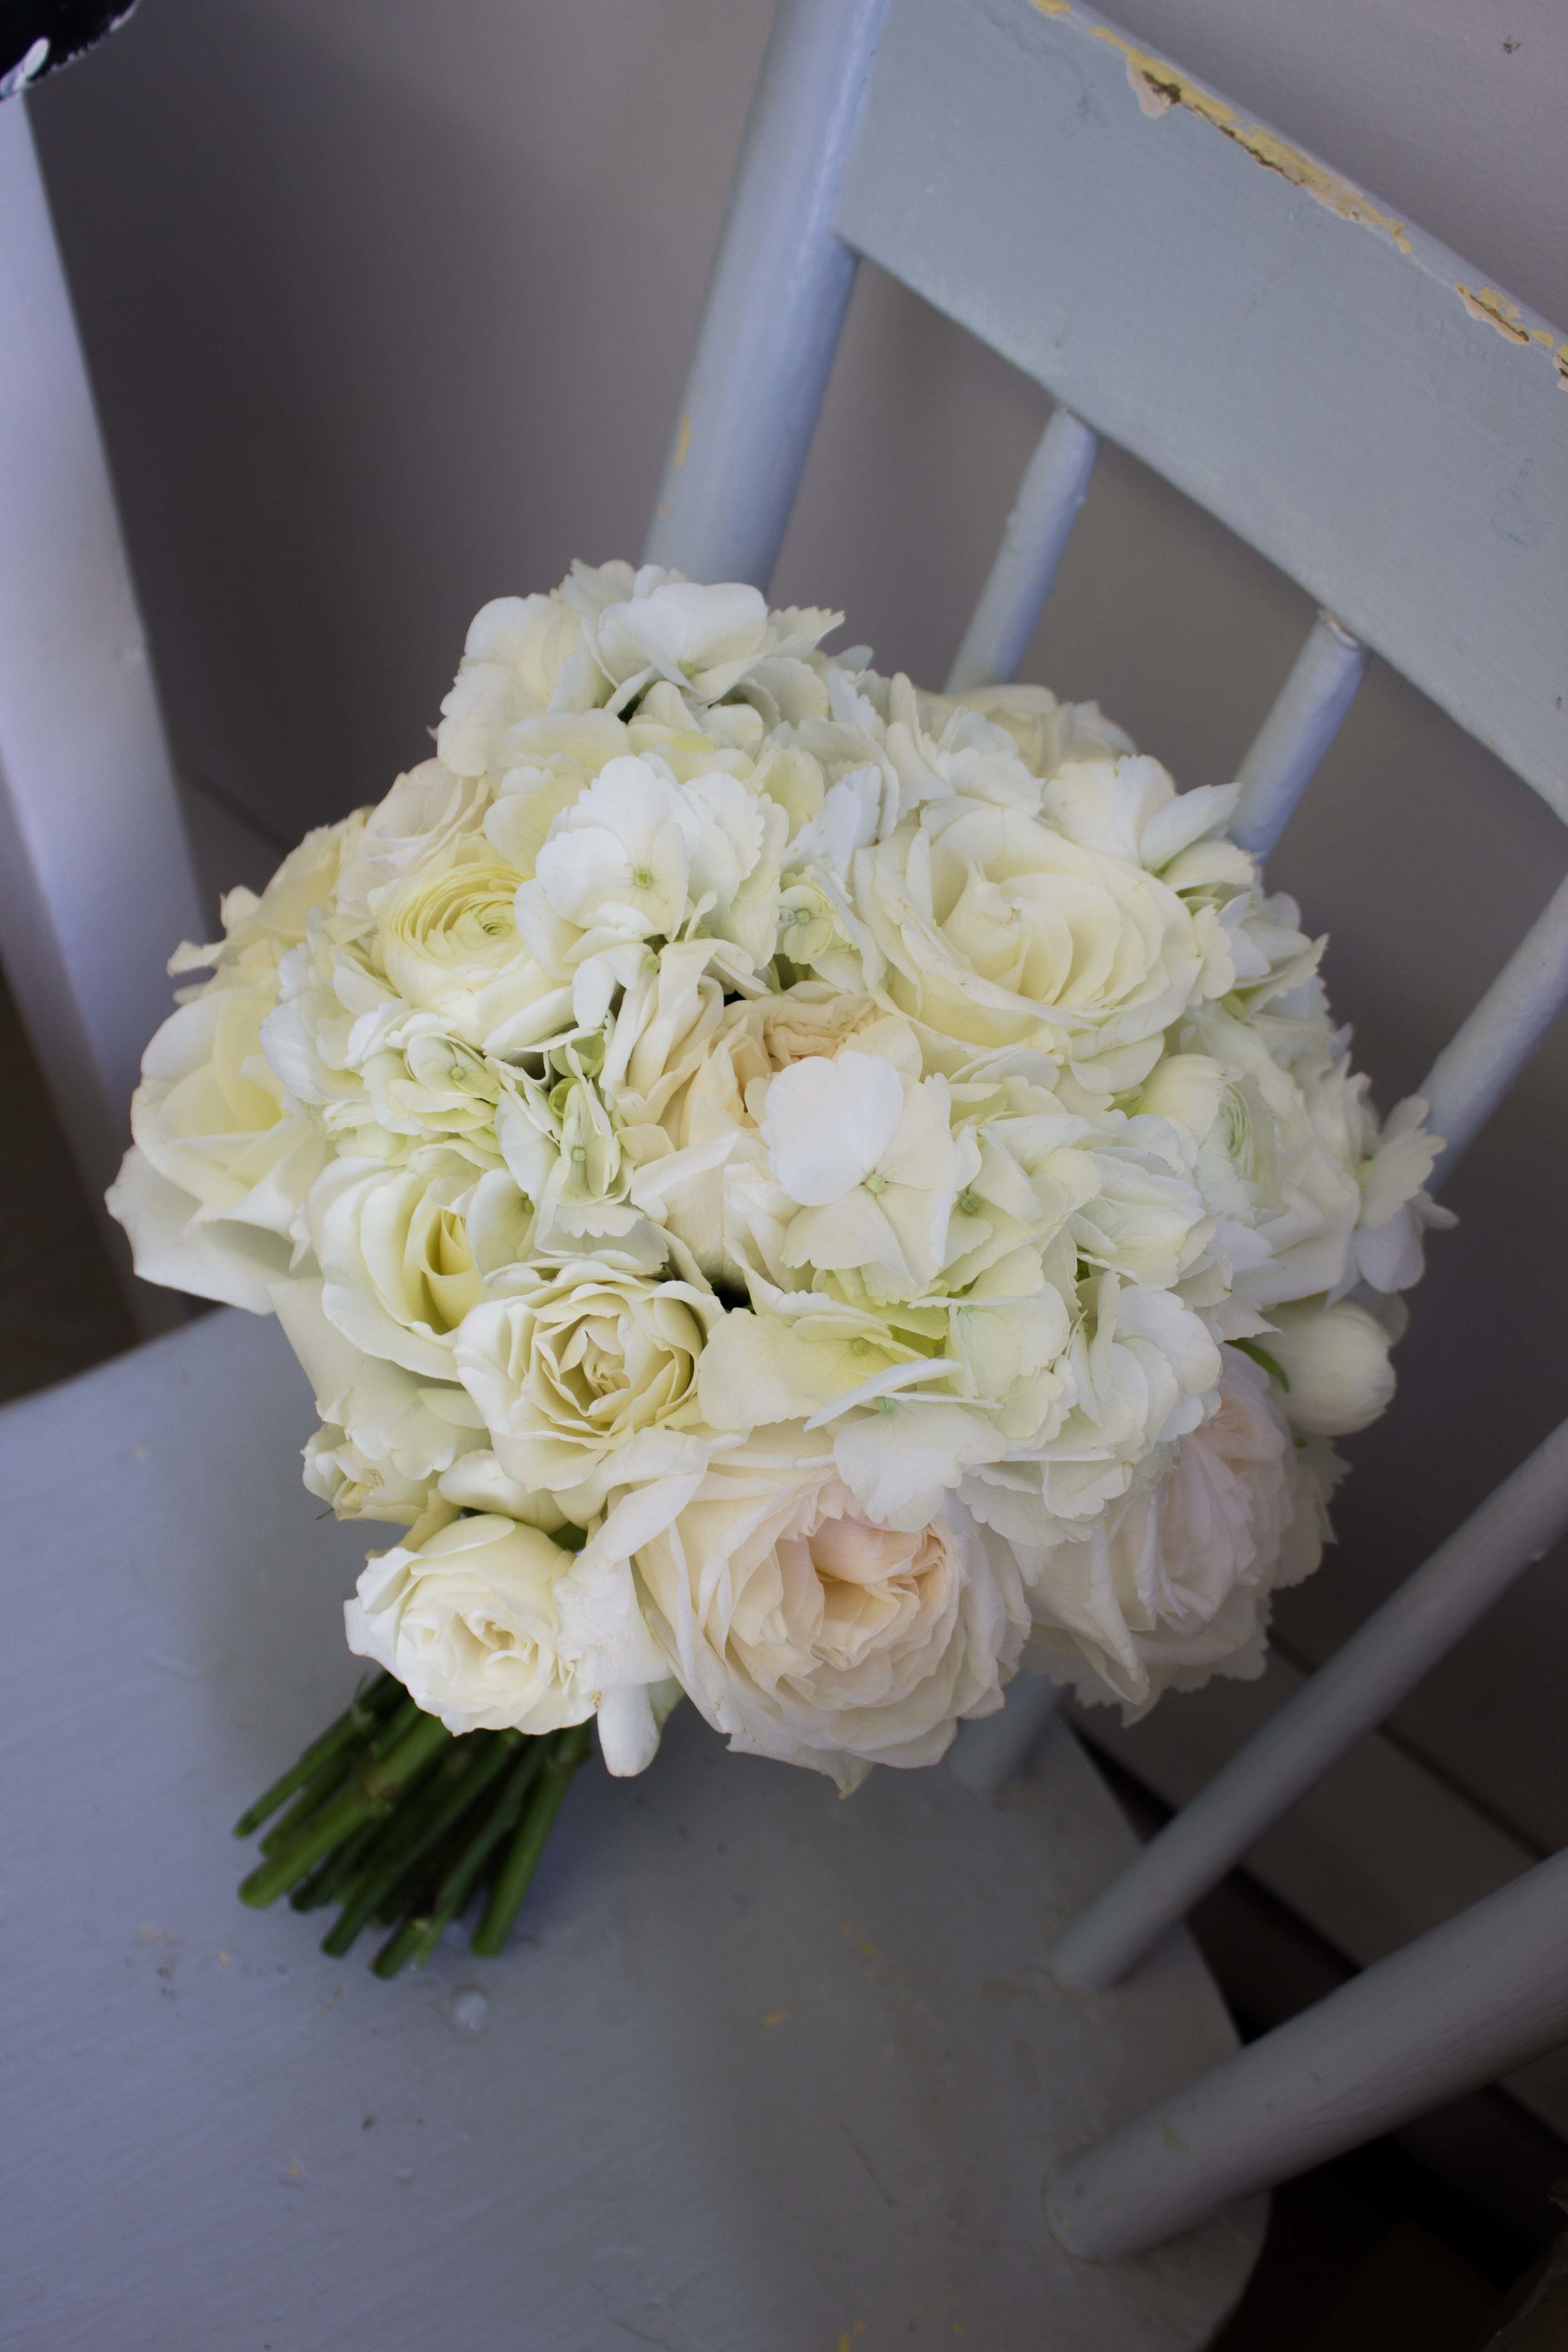 Classic white bouquet with hydrangea, roses, ranunculus, and lisianthus.